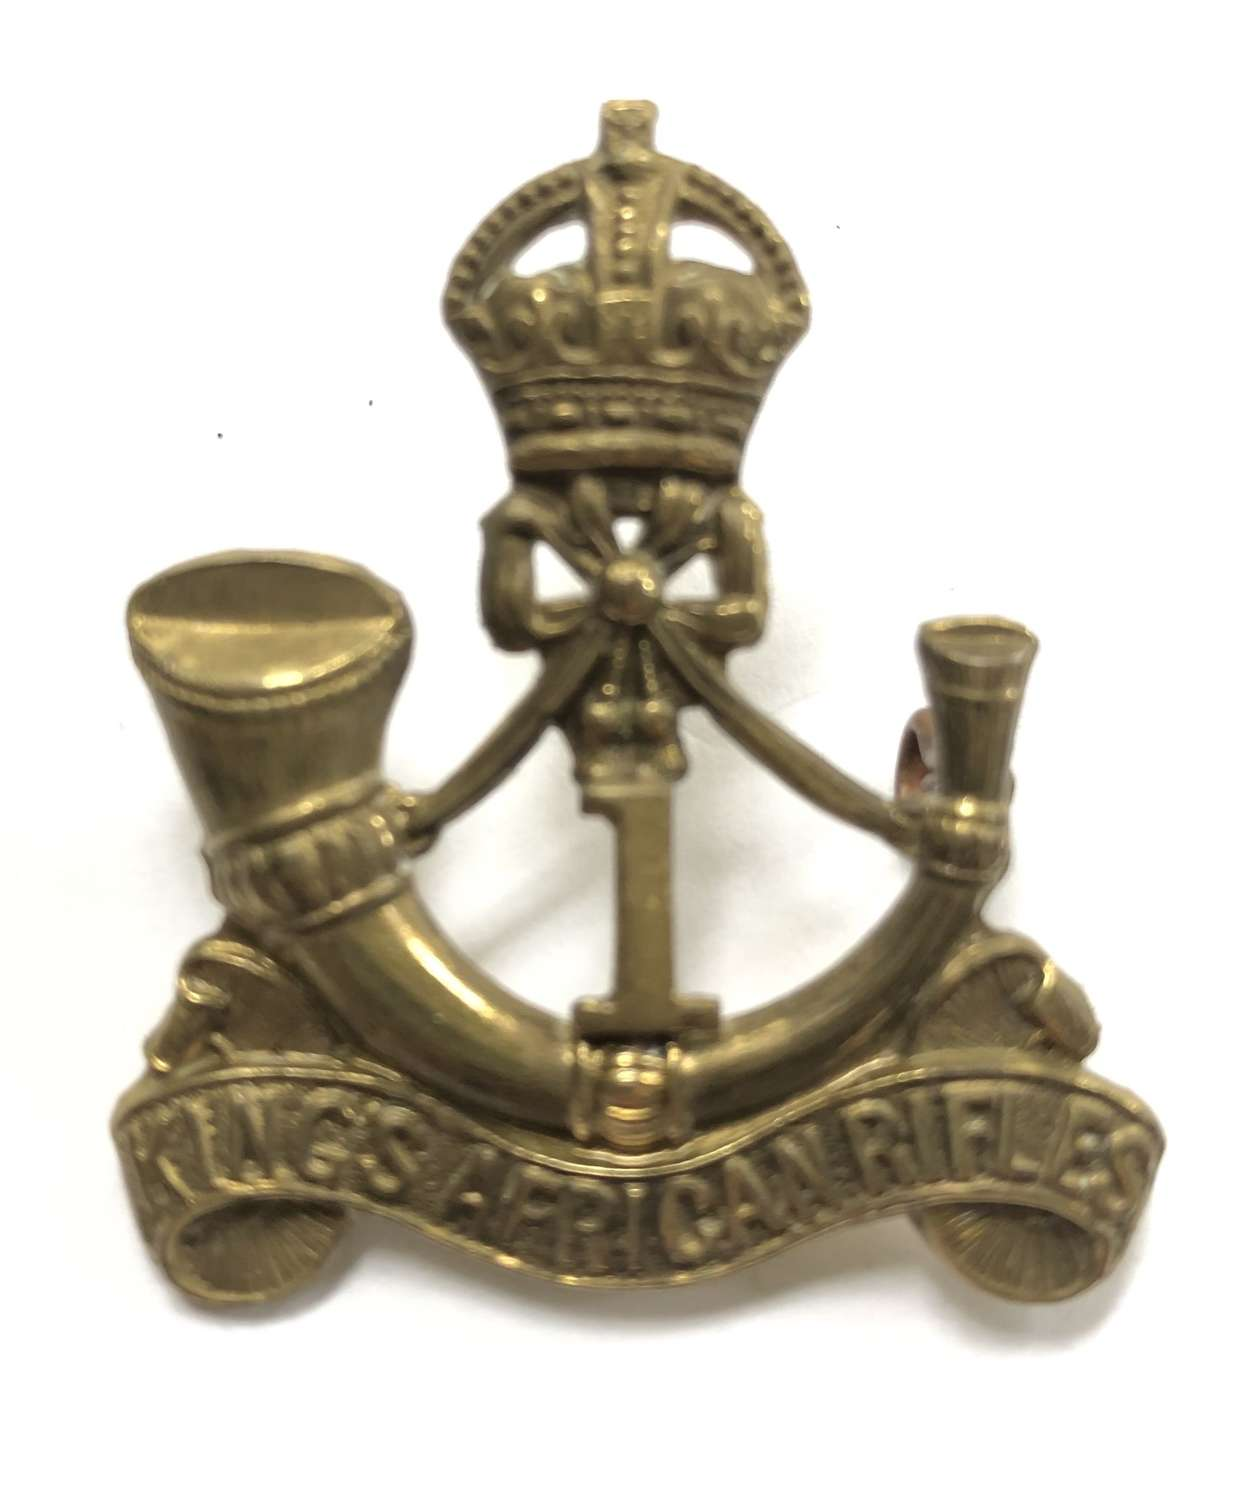 1st (Nyasaland) King's African Rifles cap badge